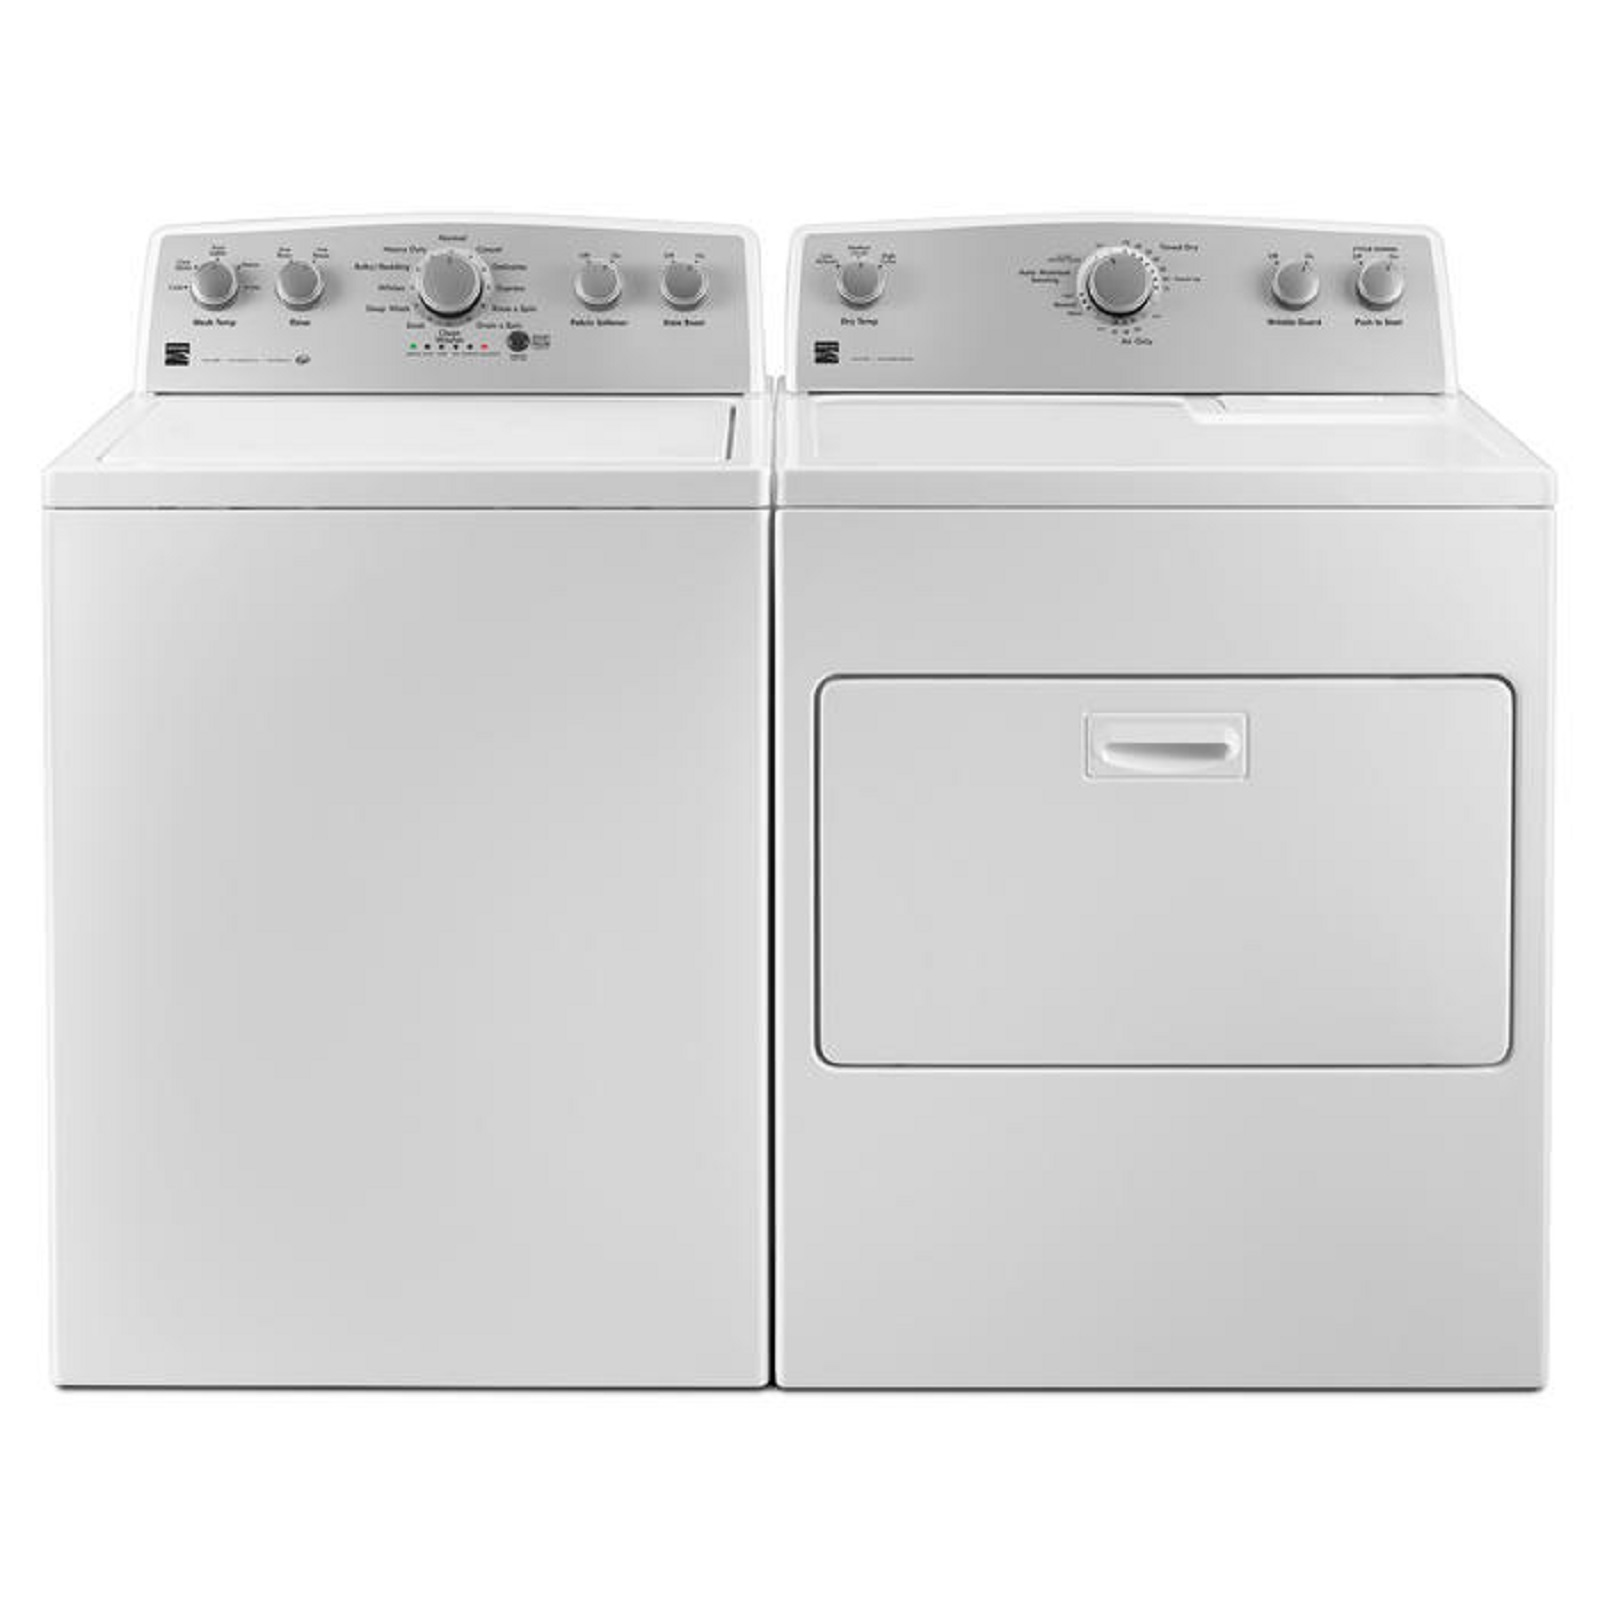 Kenmore 4.3 cu. ft. Top Load Washer &  Kenmore 7.0 cu. ft. Electric Dryer - White